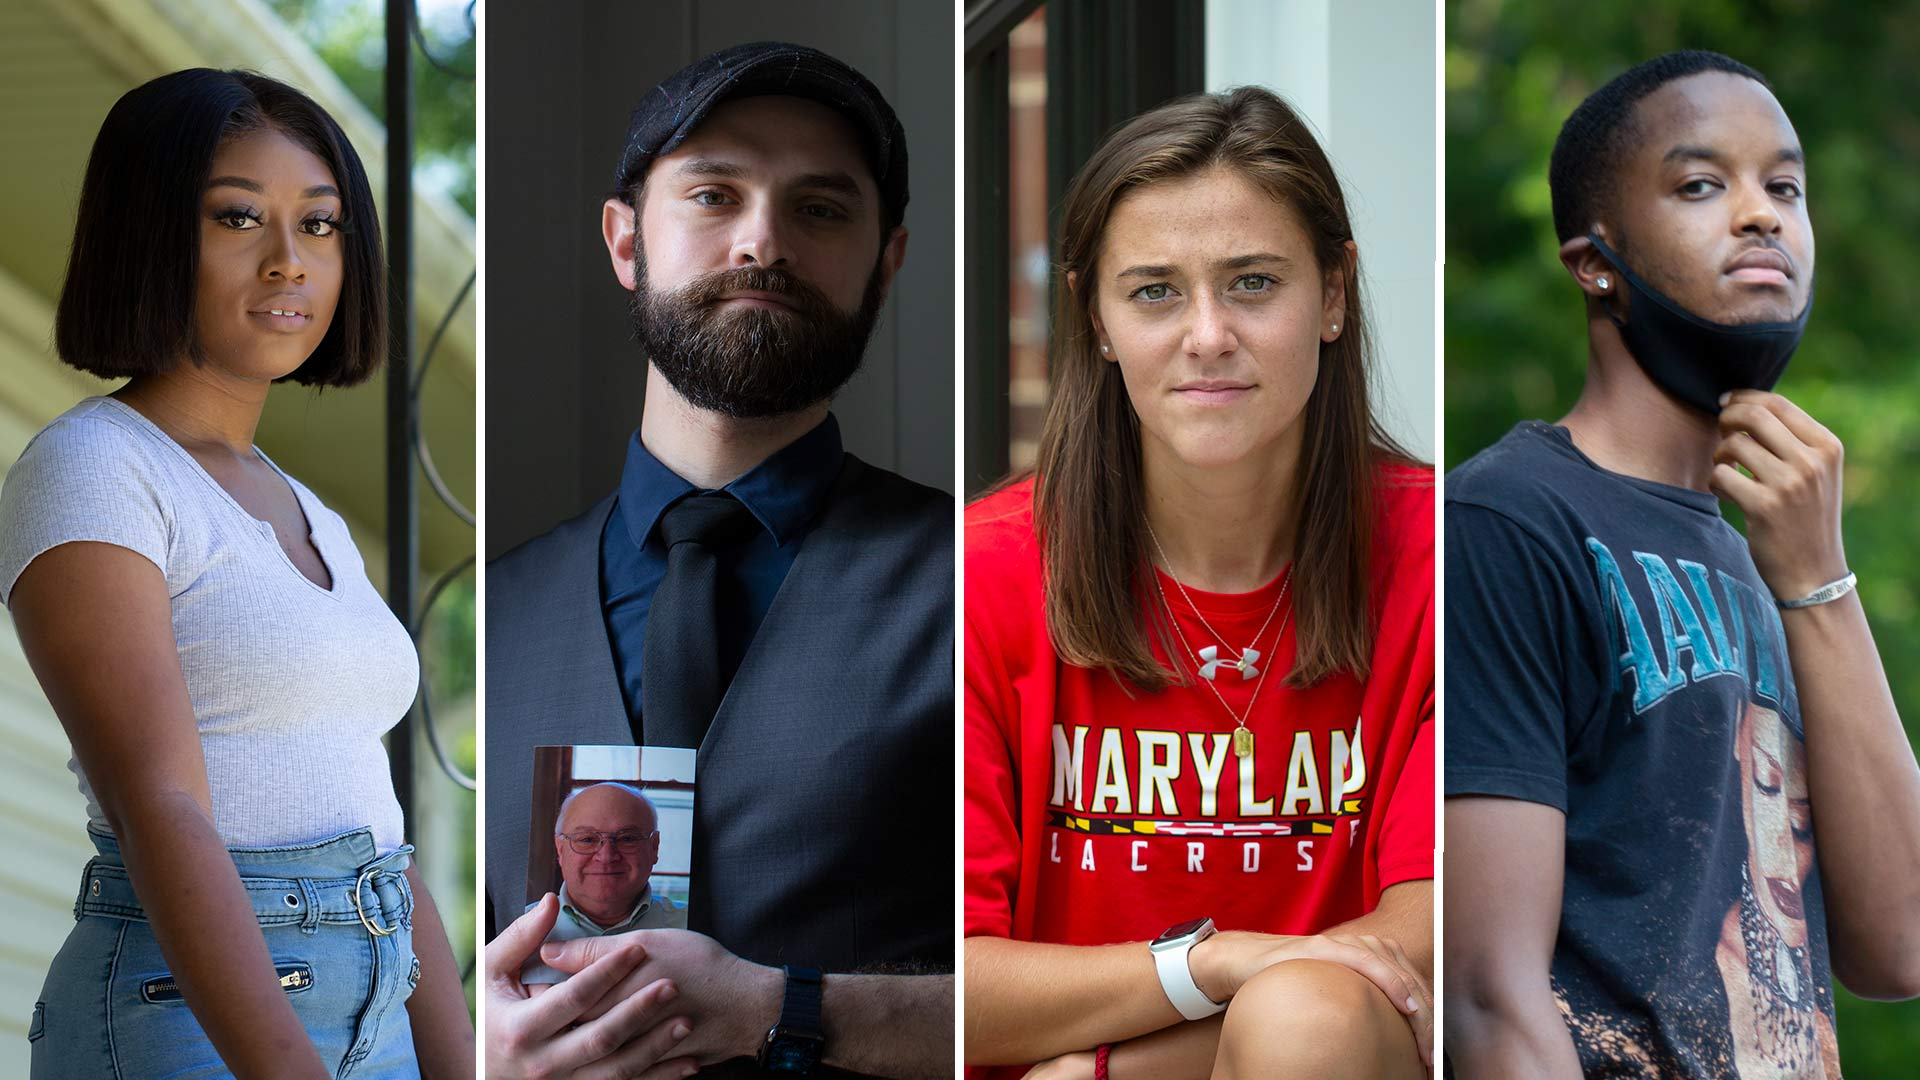 Whether in quarantine abroad, struggling for economic survival or weighing the health risks of marching in the streets, 10 Terps reveal their frustrations, pain and hope during the pandemic. (Photos by Stephanie S. Cordle)